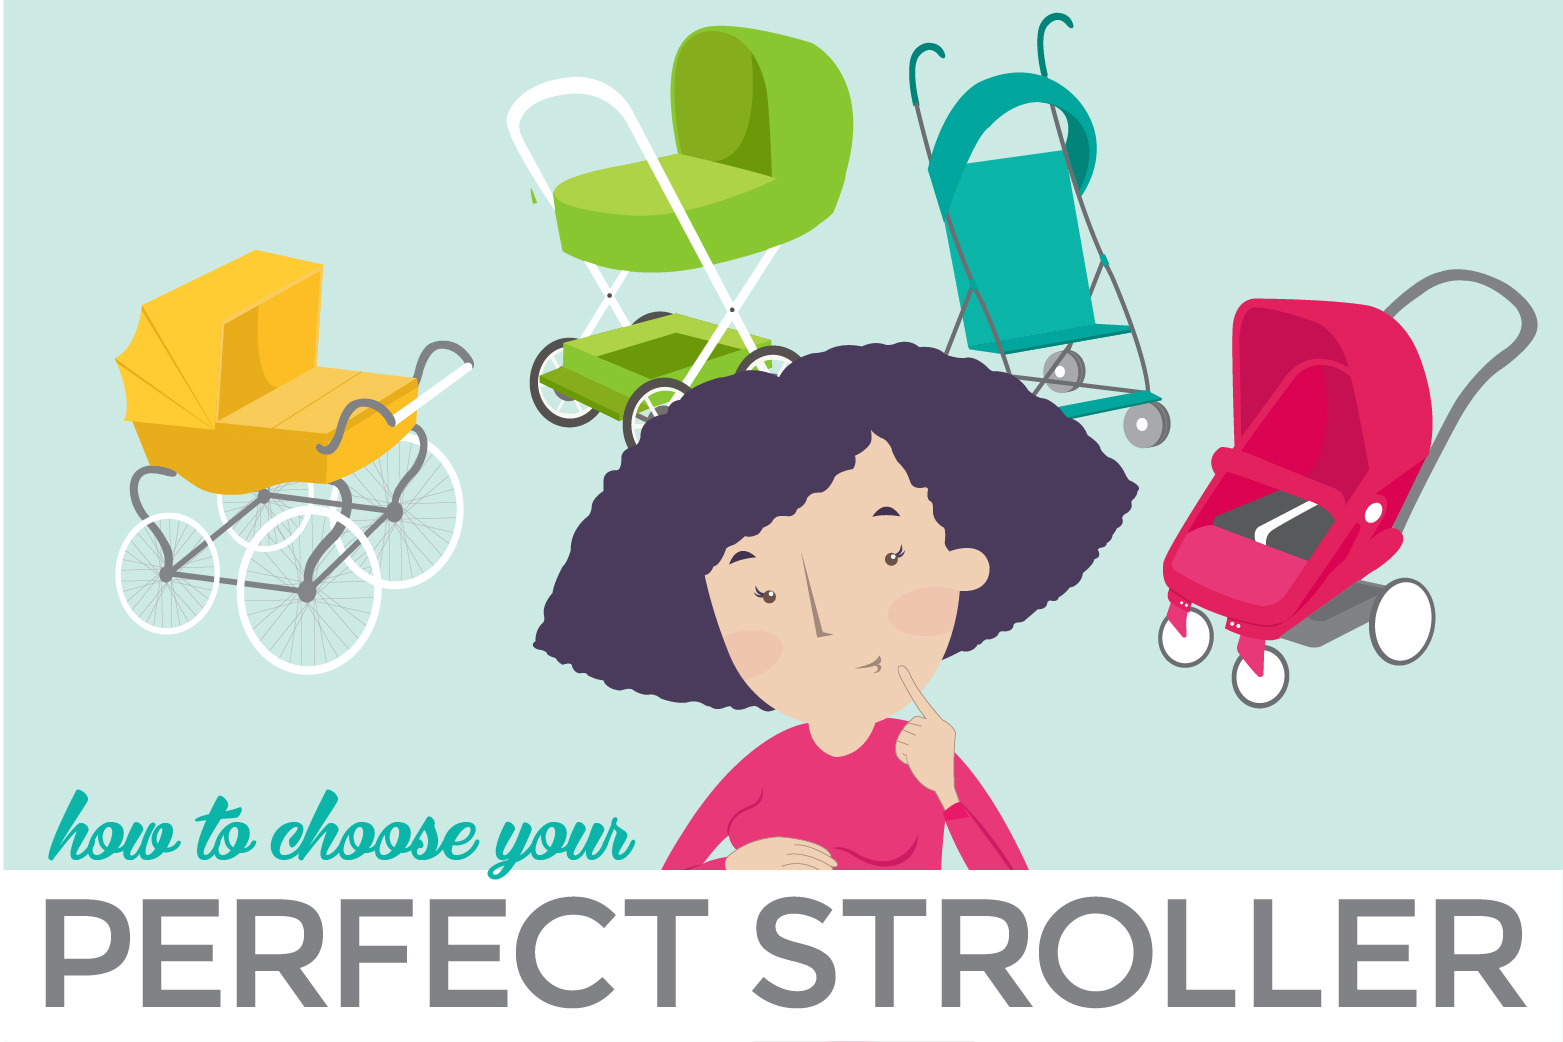 Feeling overwhelmed? Need some advice to find the stroller that's right for you? Here we break down the different types of strollers and when to use them. Use this guide to help you figure out the best stroller for your family's needs and priorities.